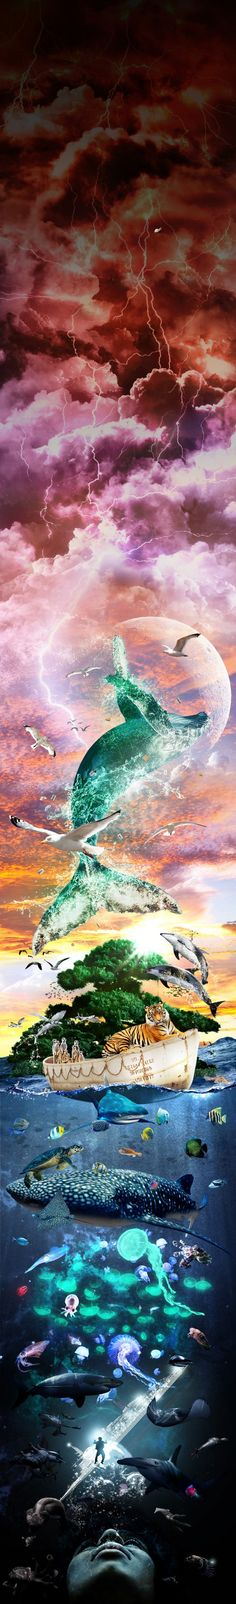 Life of Pi - Photo Manipulation by Kern Saunders Source Of Inspiration, Graphic Design Inspiration, Chakras, Film Big, Life Of Pi, Color Of Life, Great Pictures, Photo Manipulation, Tv